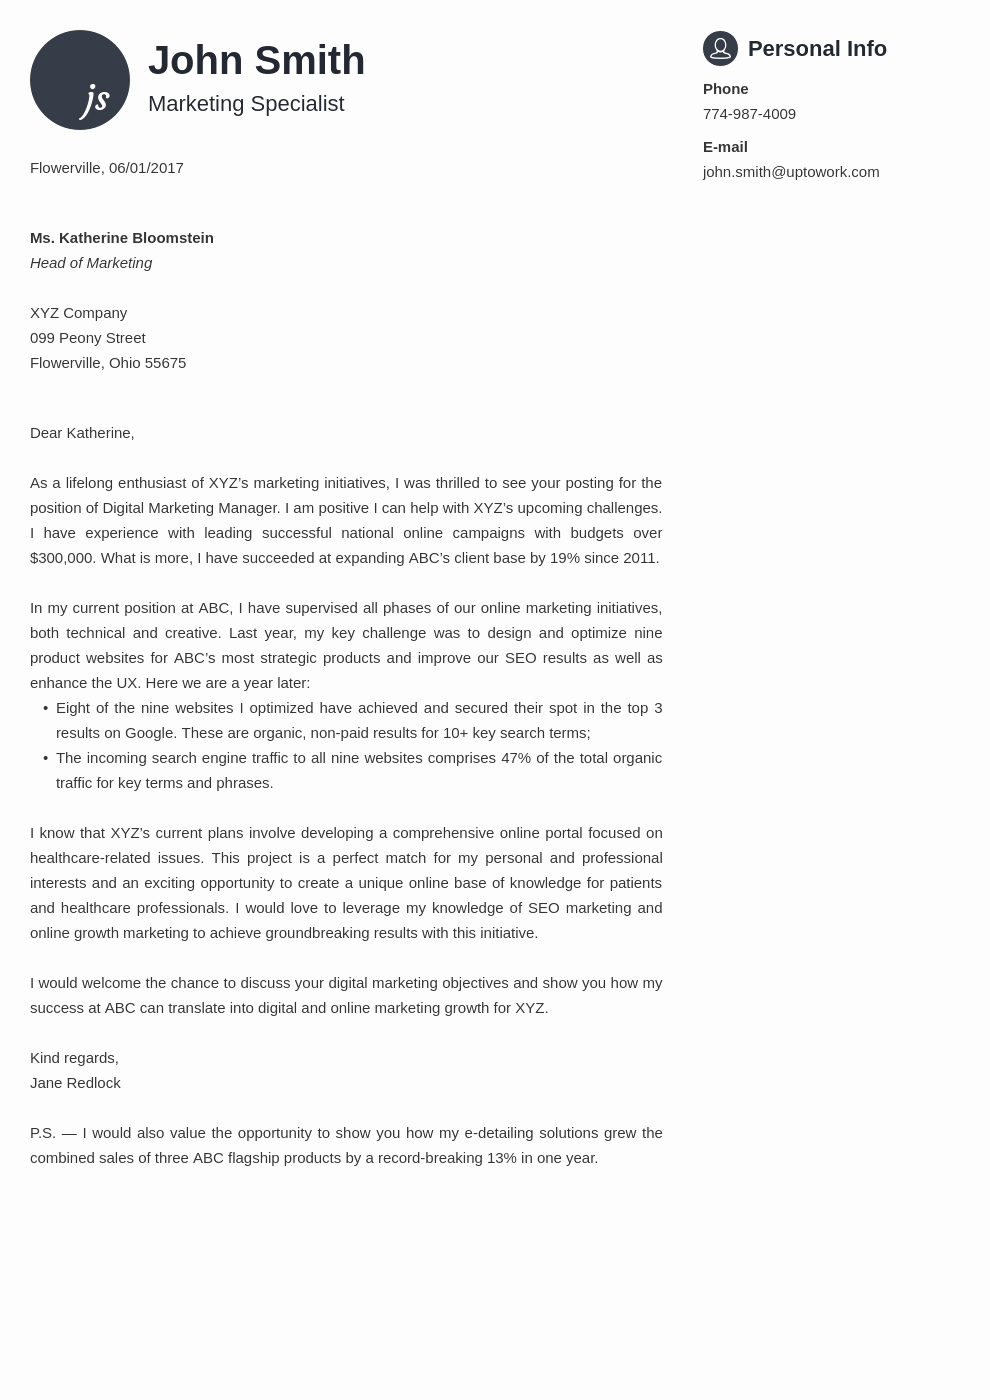 Cover Letter Template for Pages New 20 Cover Letter Templates Fill them In and Download In 5